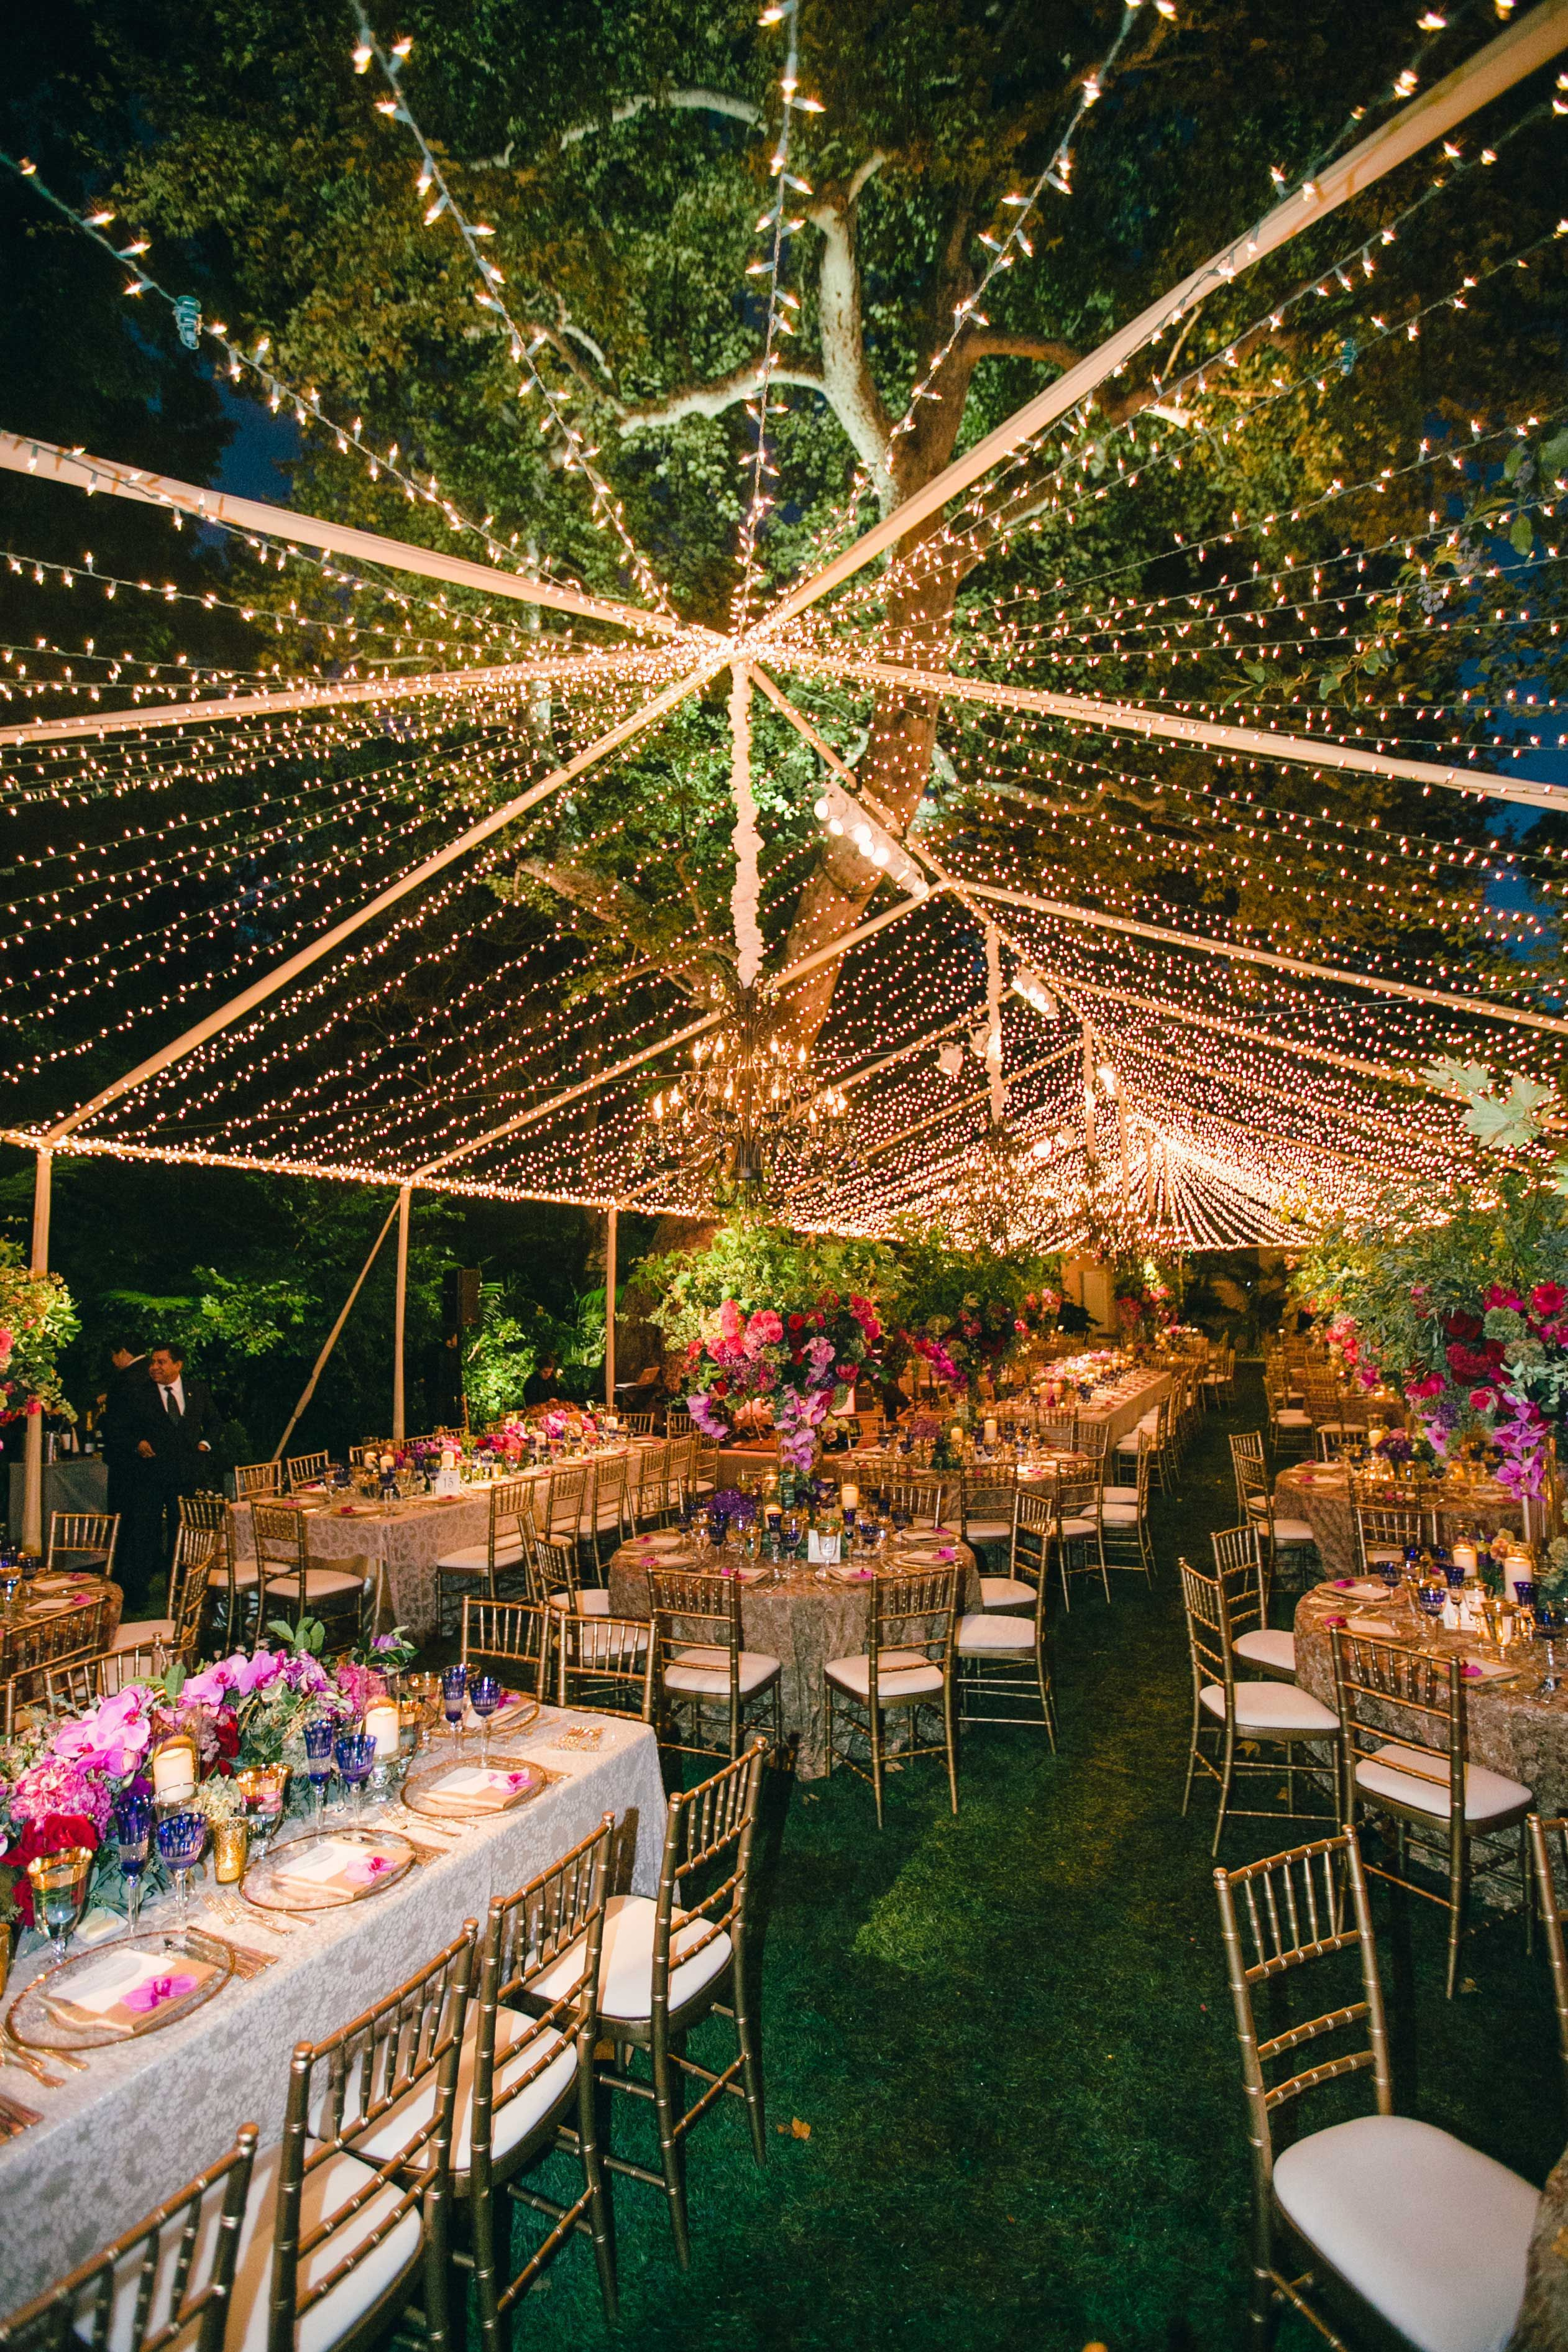 How To Instantly Transform Your Wedding With String Lights